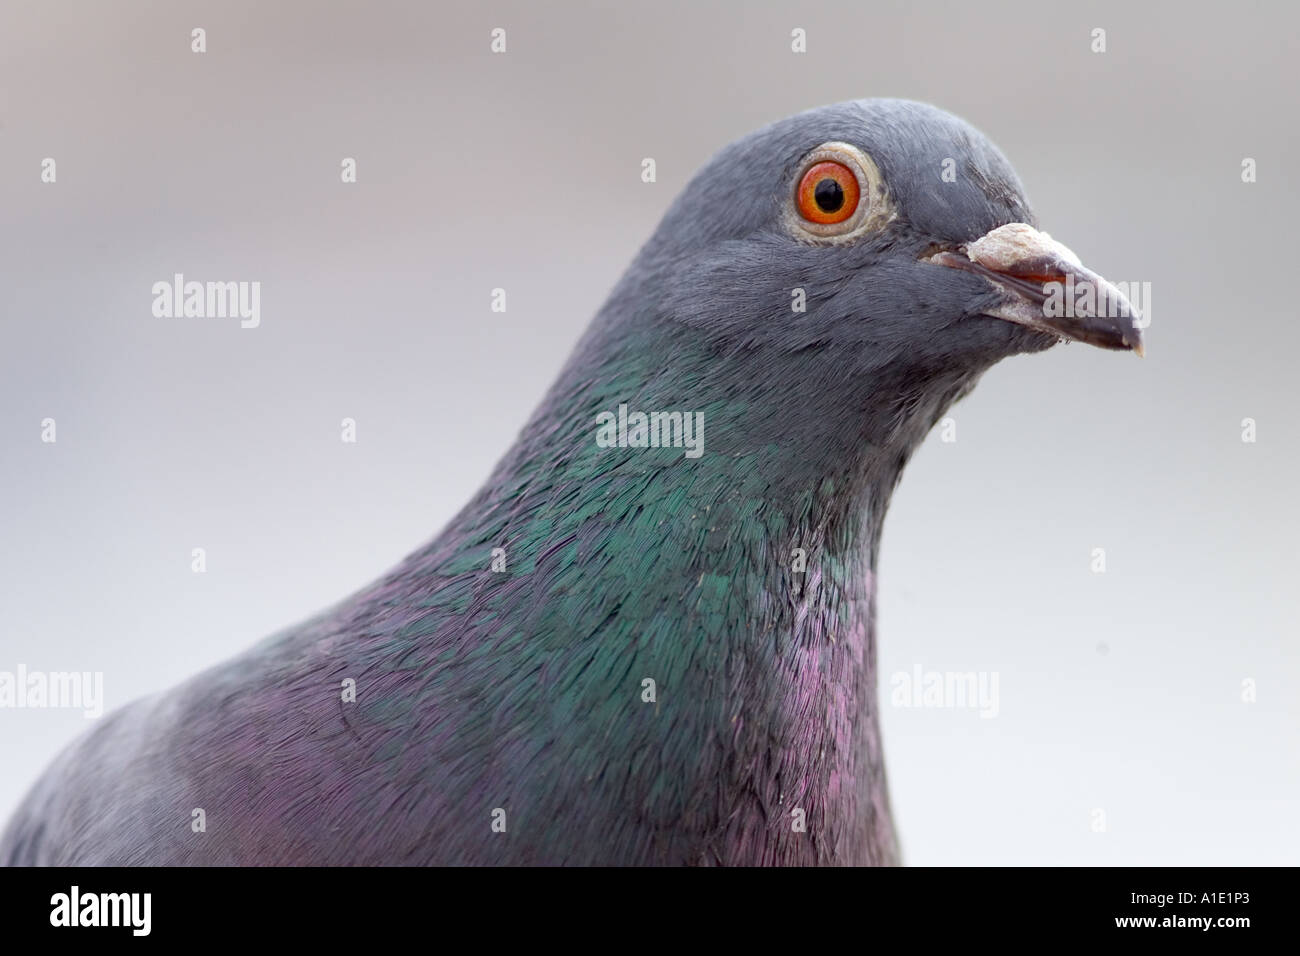 A bird may be known by its song 10